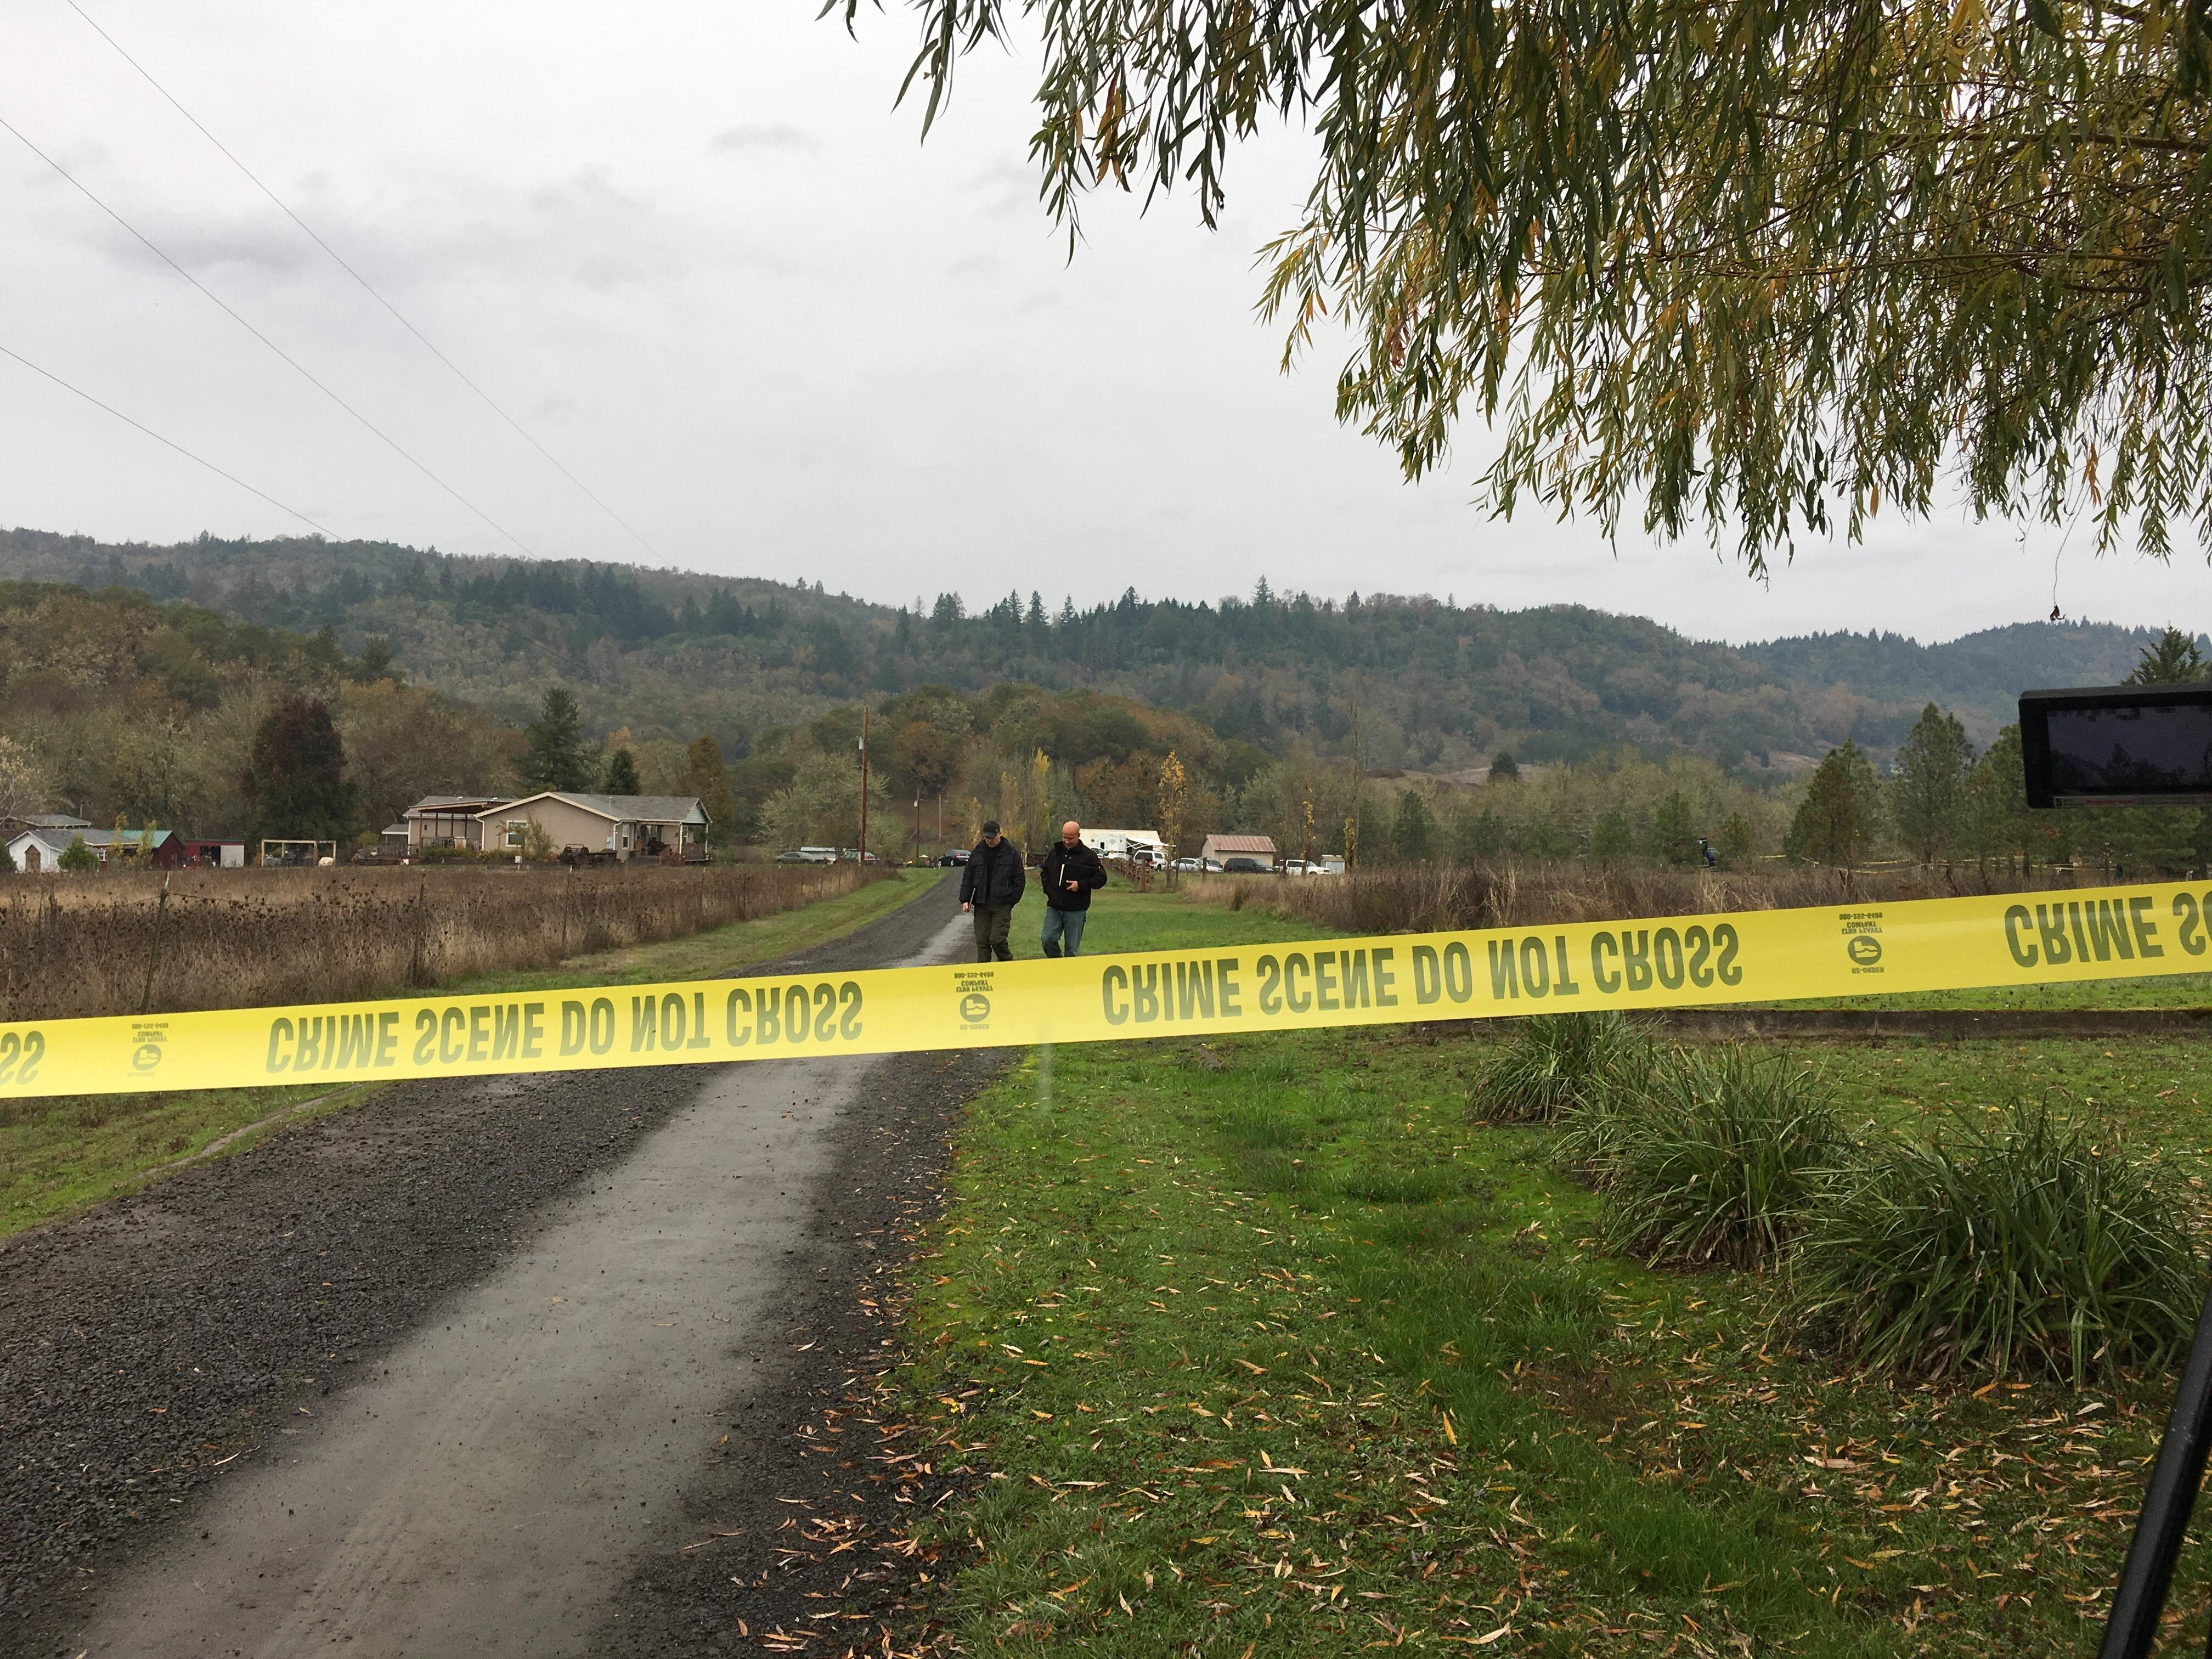 Police tape ropes off the scene as police investigate after three people were found dead in Lookingglass, southwest of Roseburg, Ore., Nov. 8, 2017. (SBG)